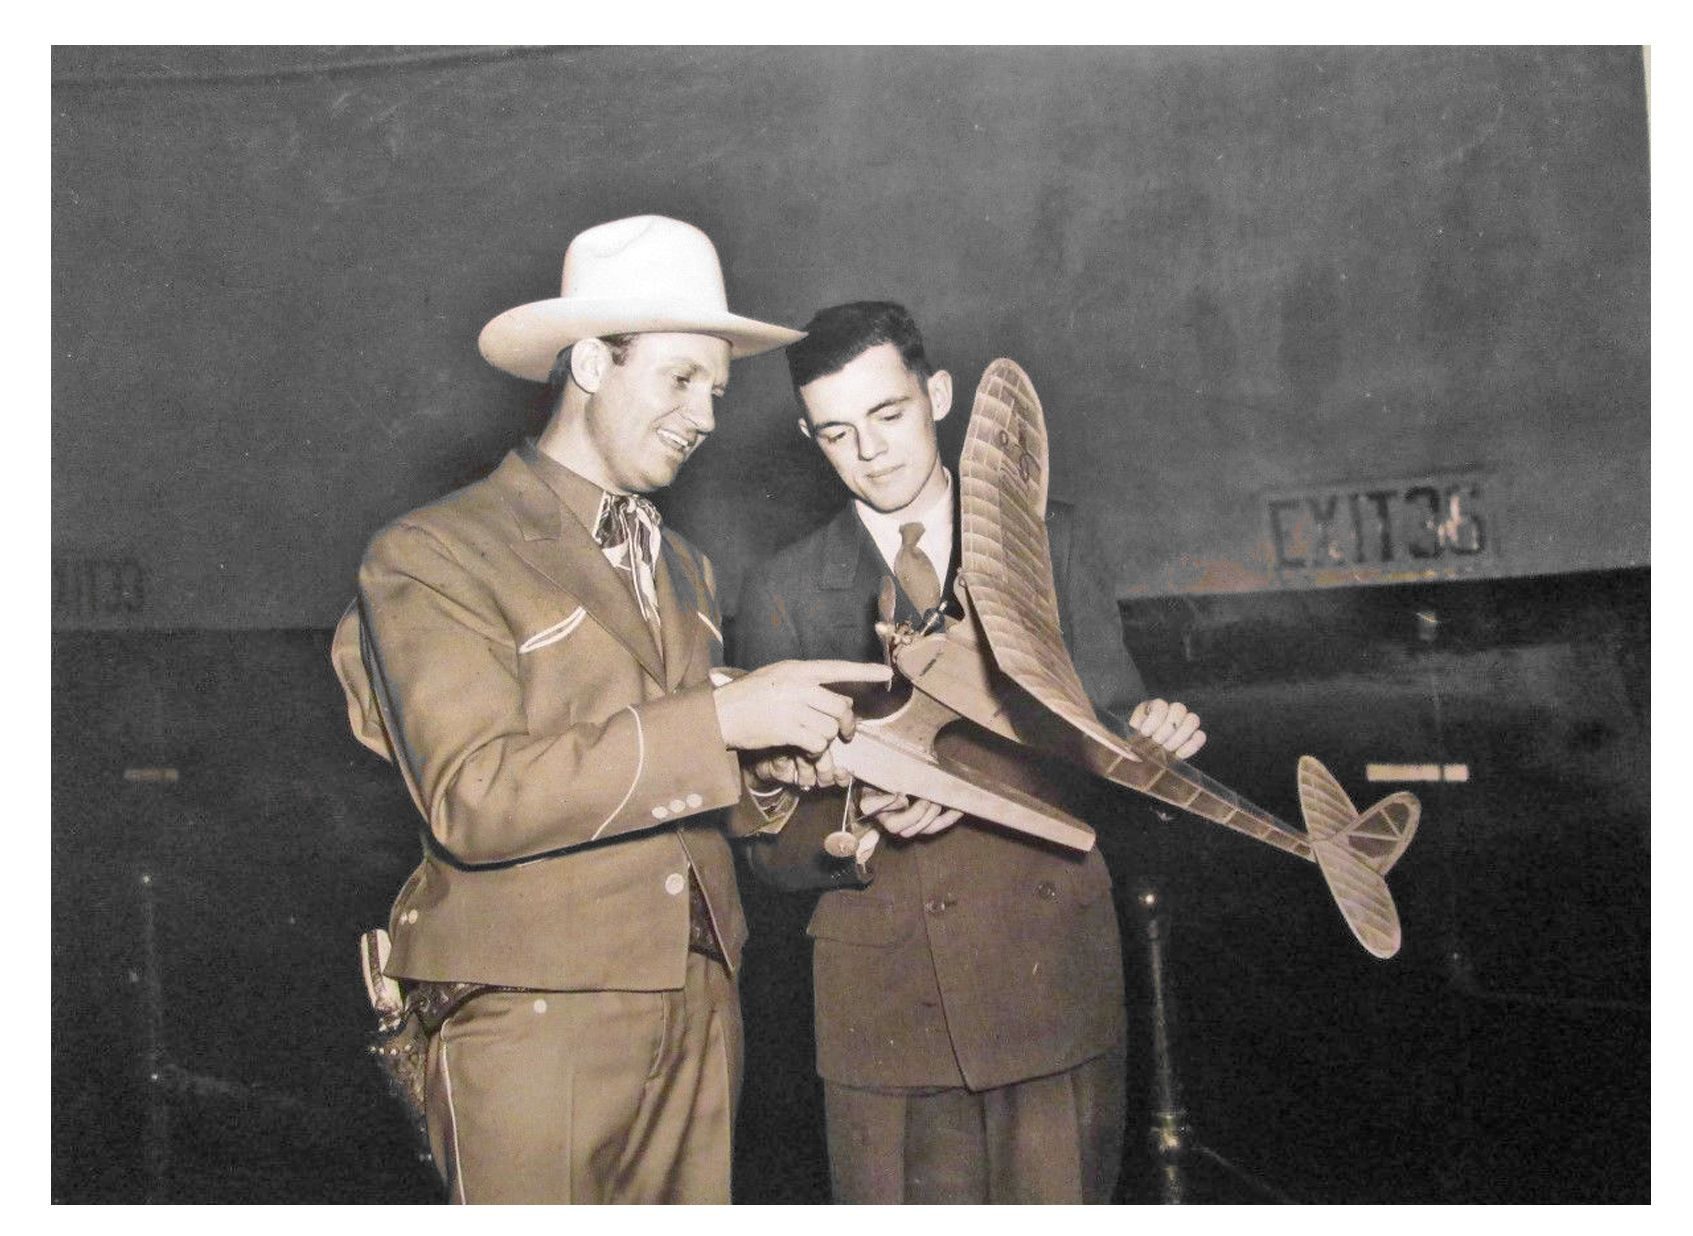 1950's Cowboy With Model Airplane